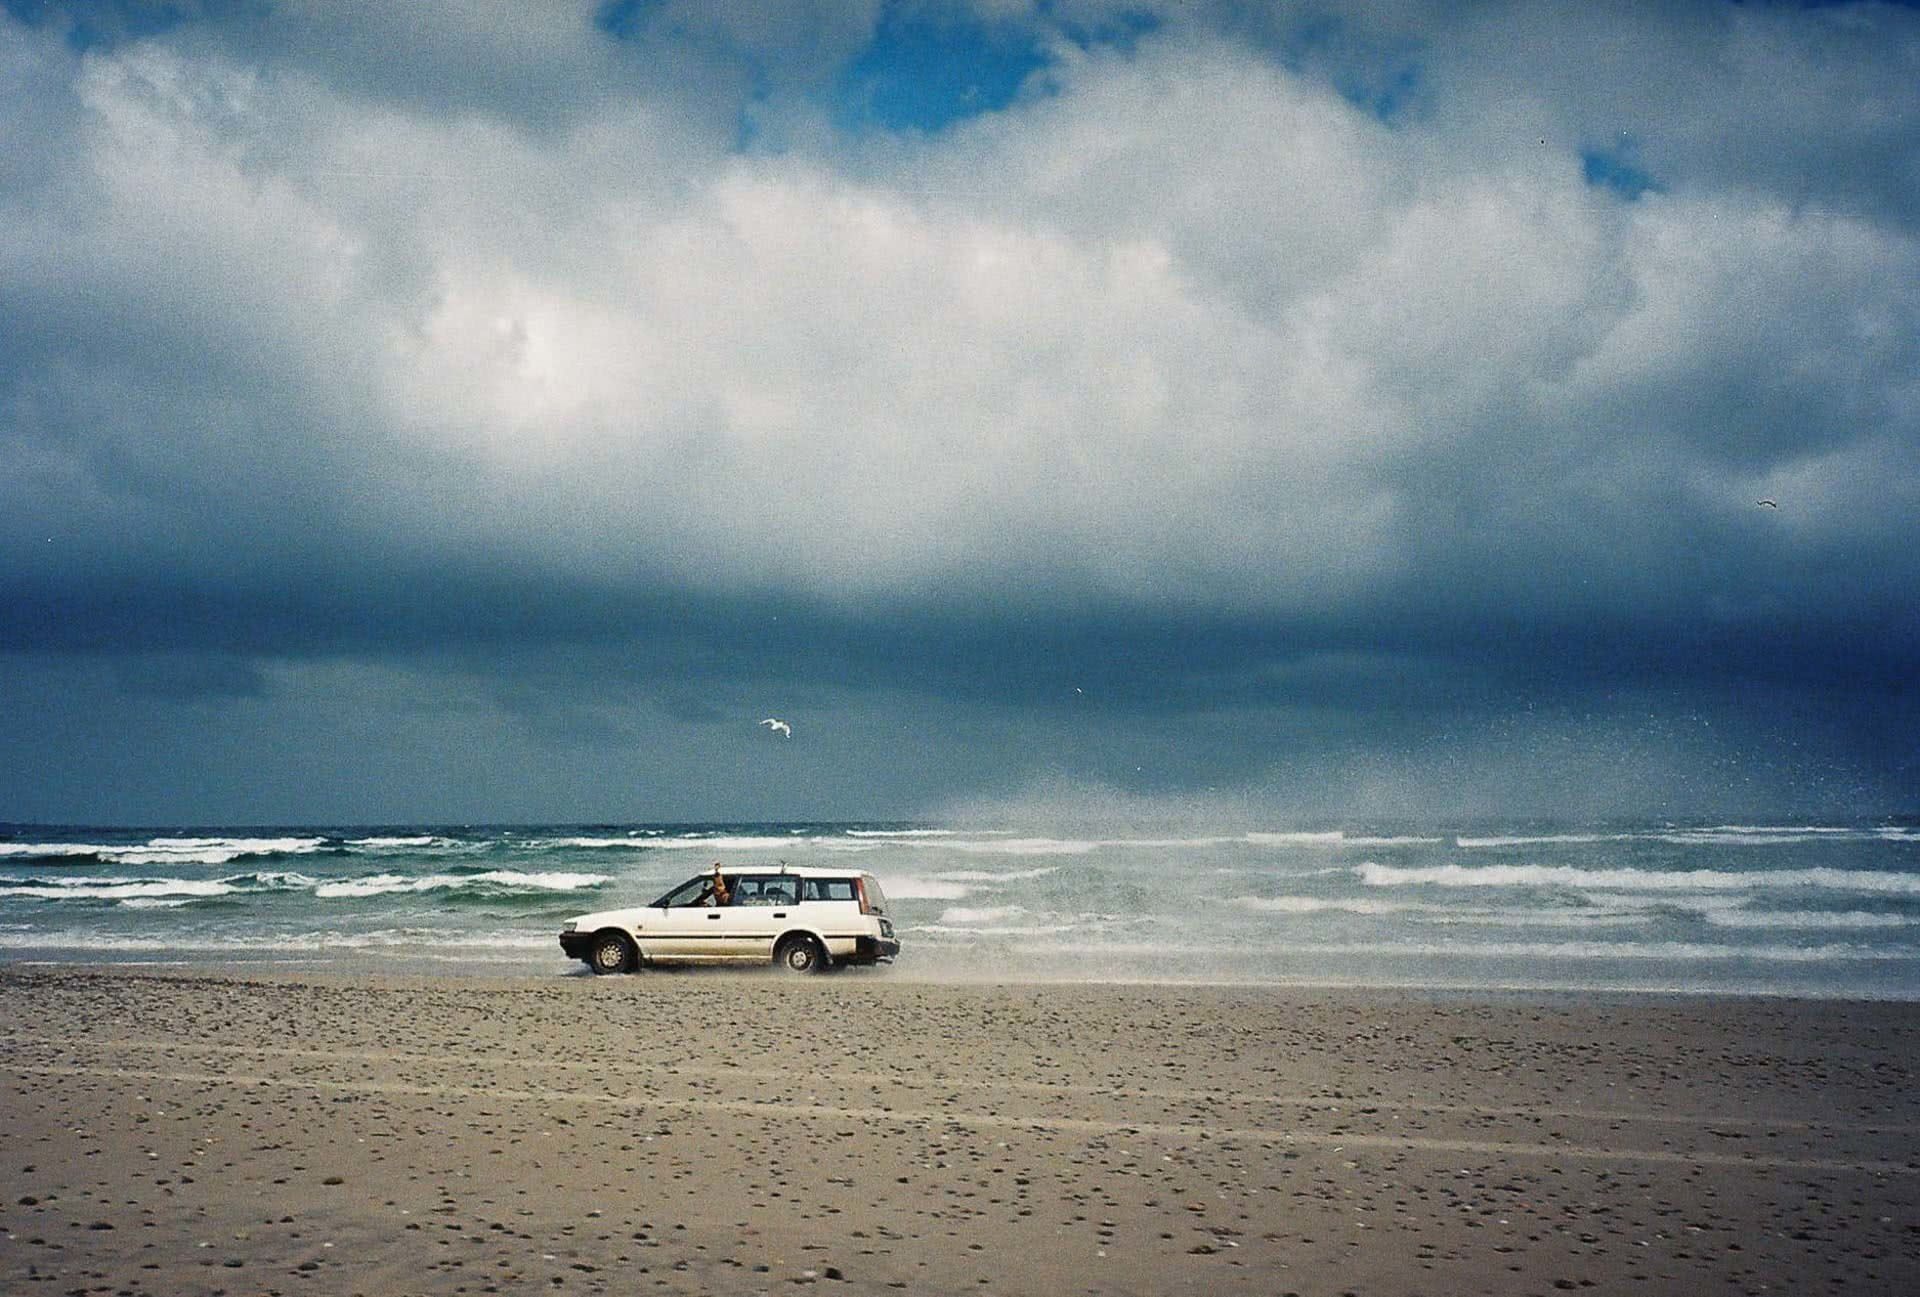 BeachDriving, 7 Things to Do on the Long Weekend when Campsites Are Booked Out, ruby bisson, film photography